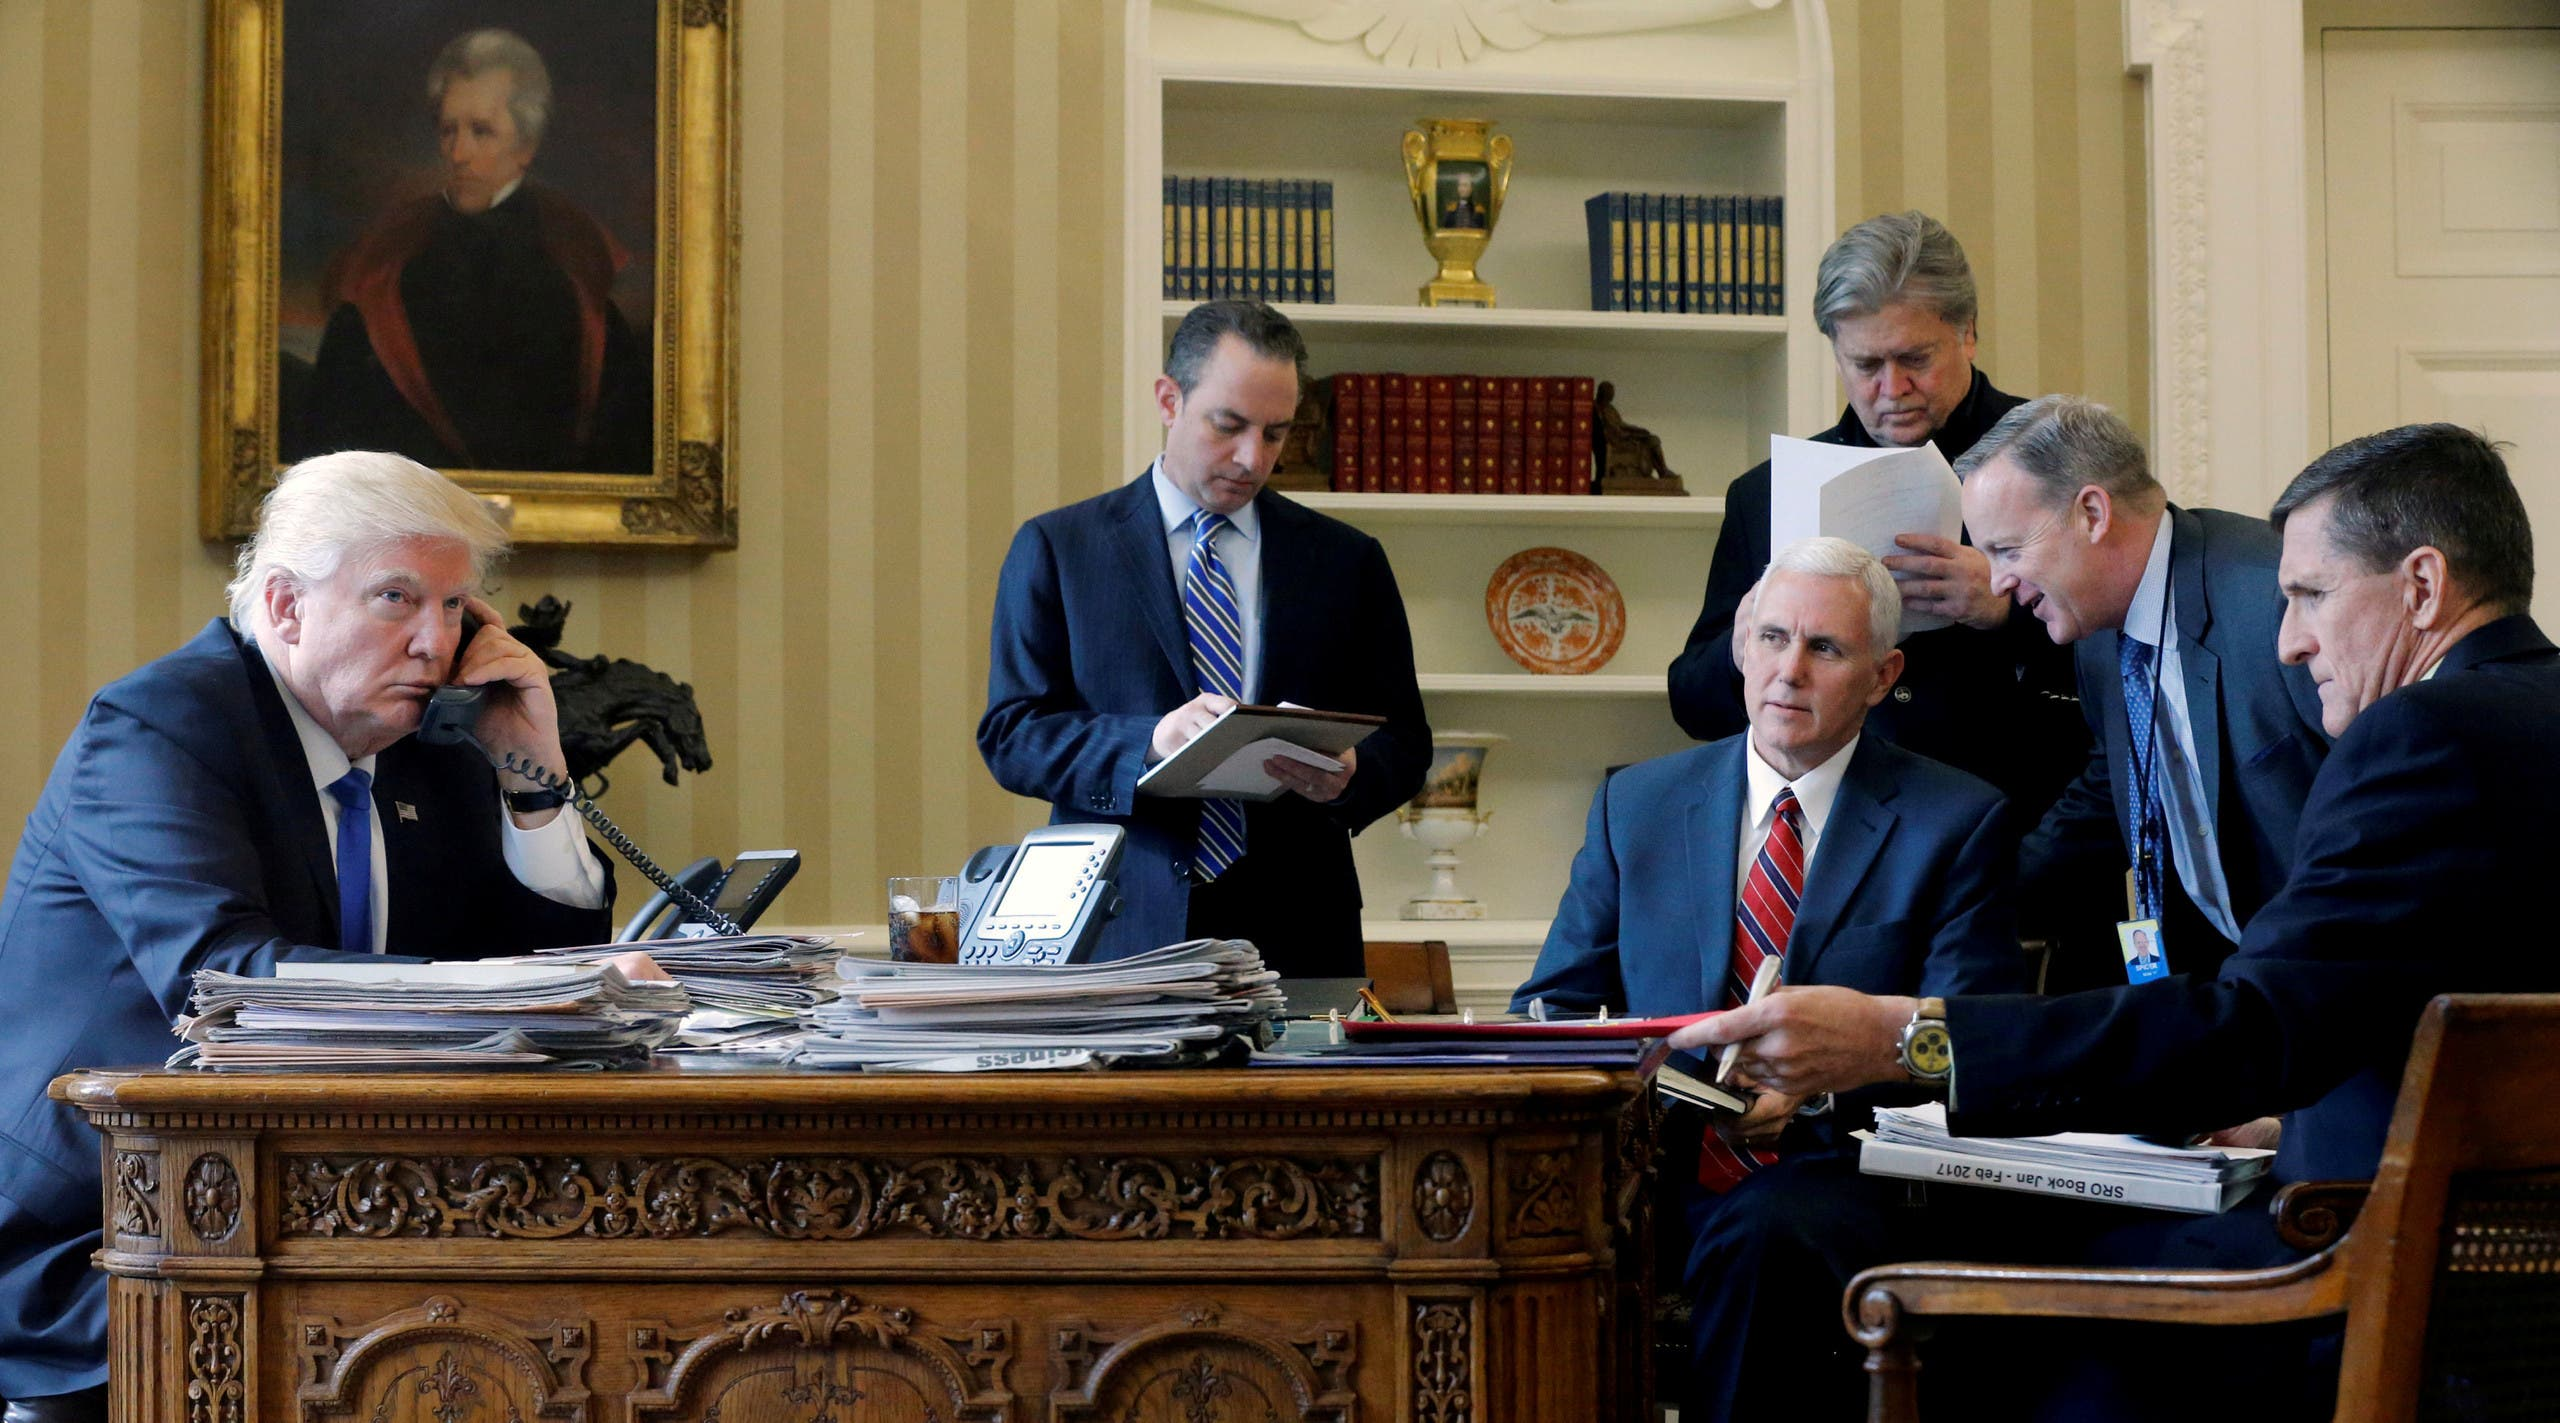 US President Donald Trump (L-R), joined by Chief of Staff Reince Priebus, Vice President Mike Pence, senior advisor Steve Bannon, Communications Director Sean Spicer and National Security Advisor Michael Flynn, speaks by phone with Russia's President Vladimir Putin in the Oval Office at the White House in Washington. (File photo: Reuters)